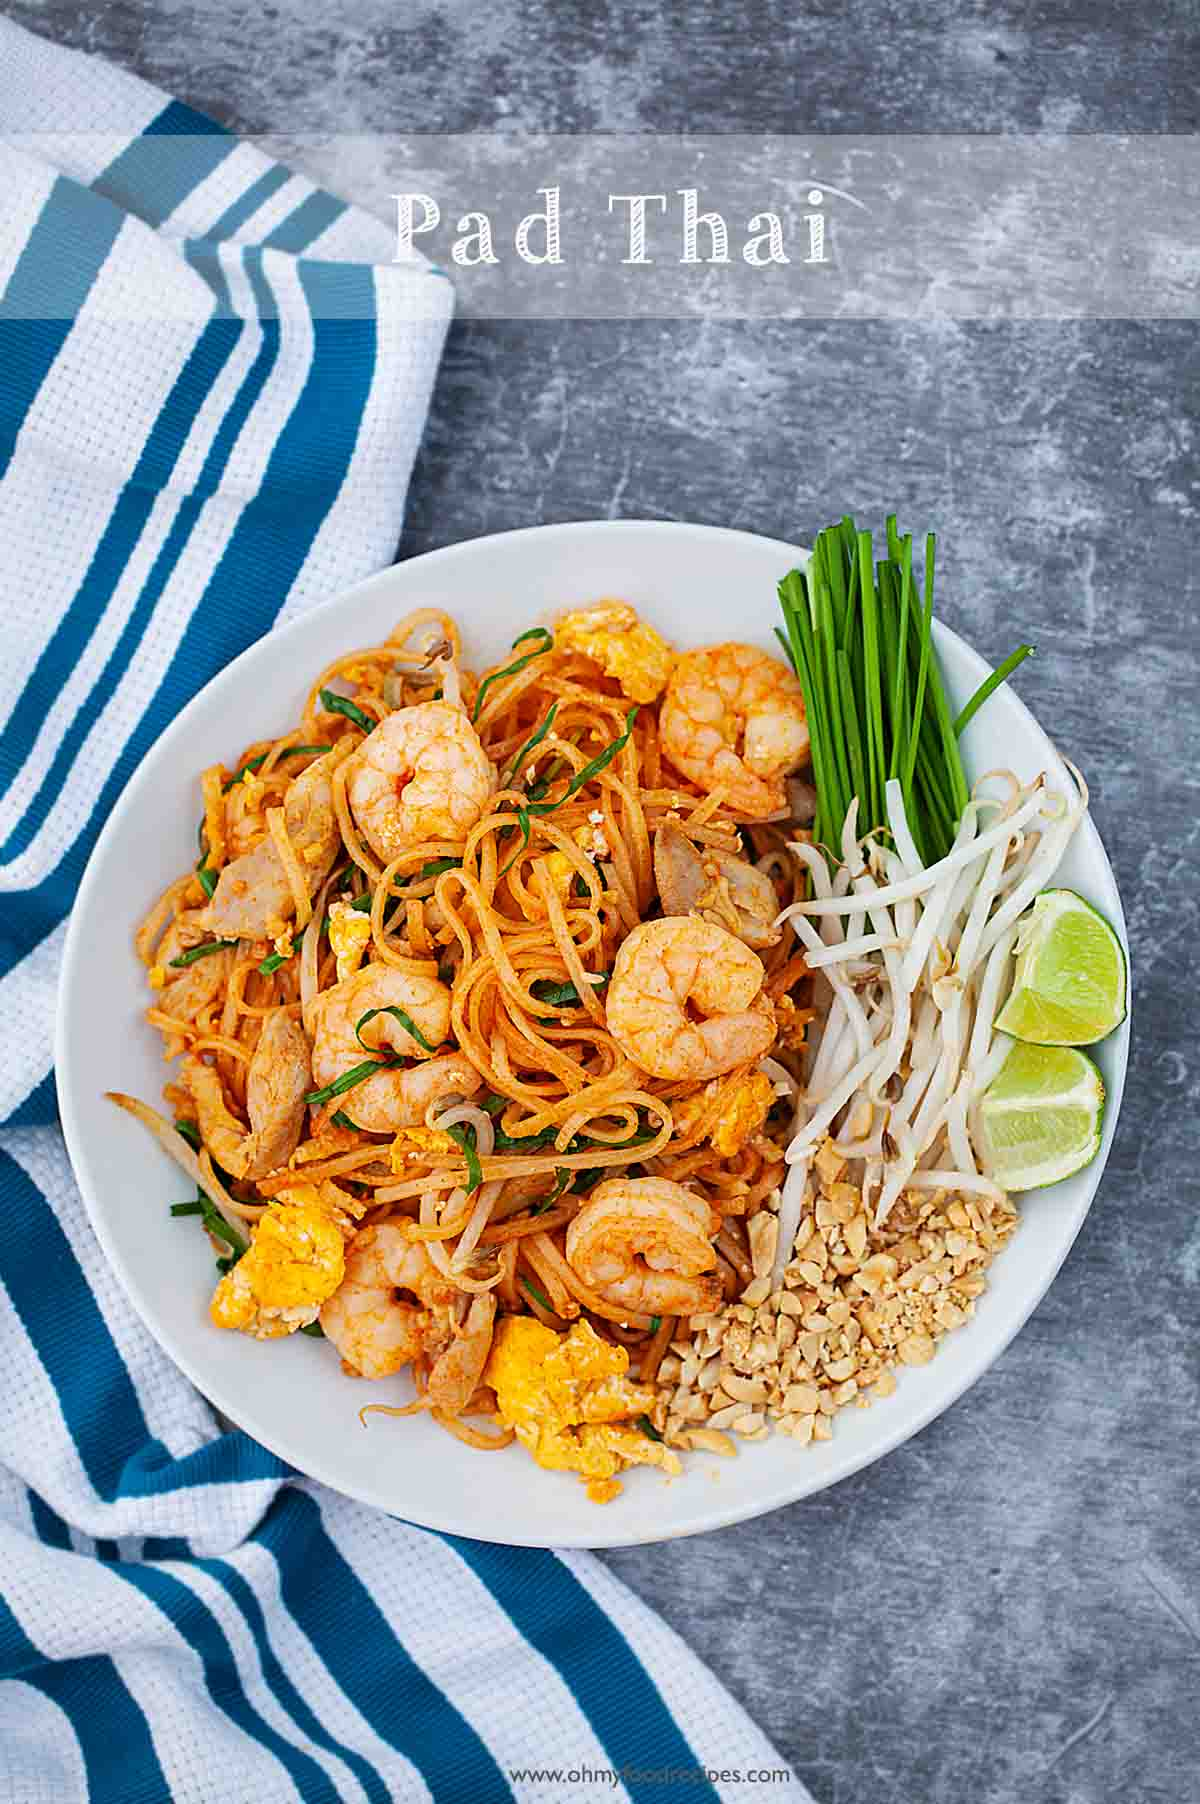 easy homemade stir fry pad thai noodles on the plate with blue striped towel as background